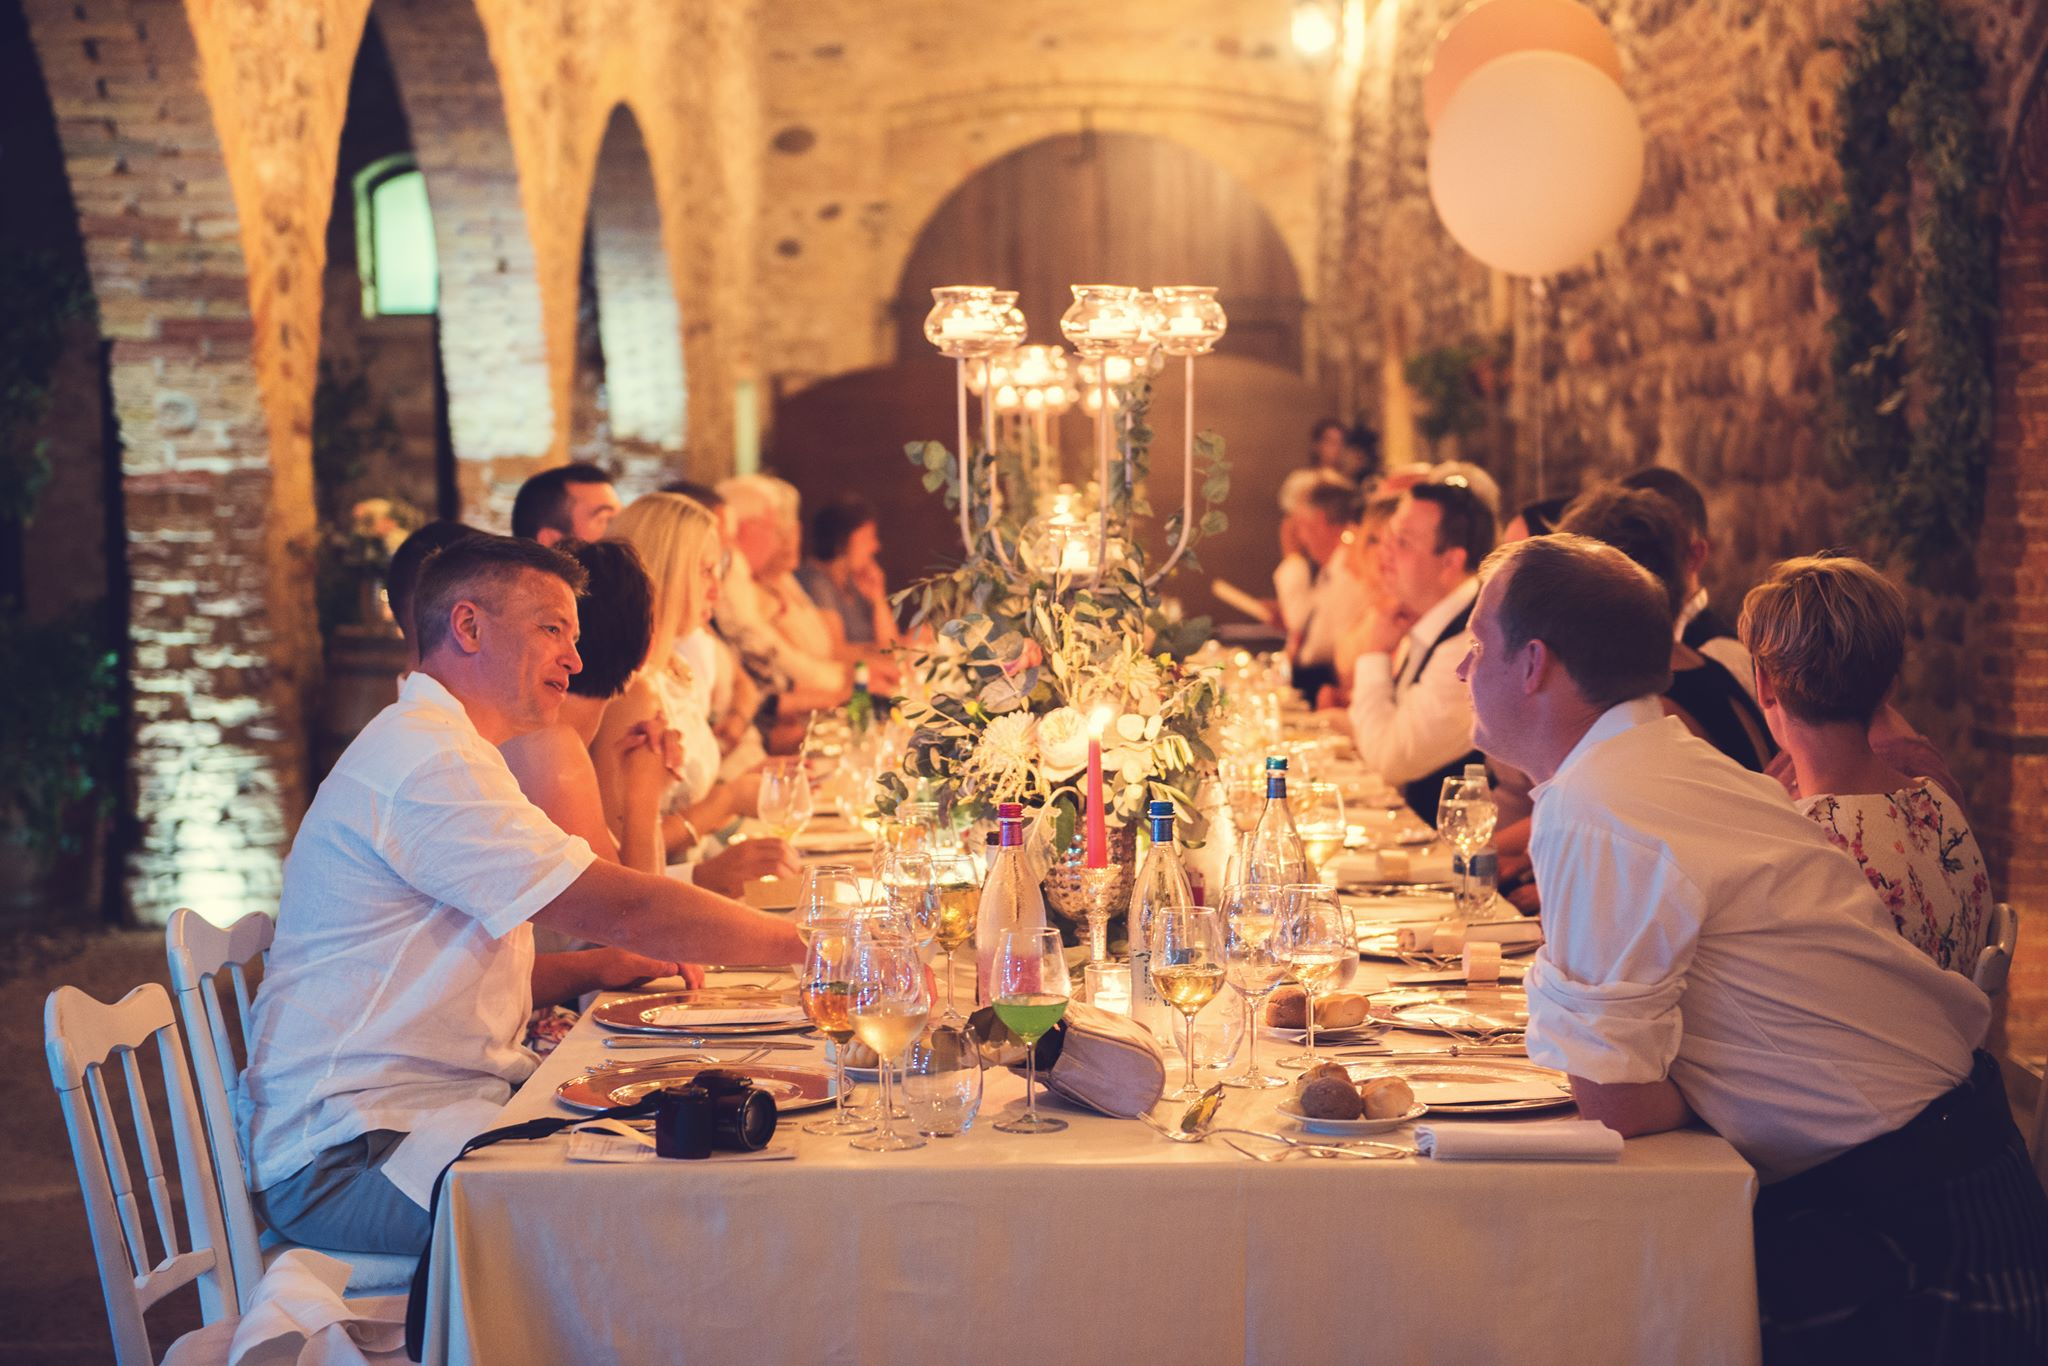 20-dinner-party-catering-food-and-sweet-matrimonio-verona-nibel-atelier